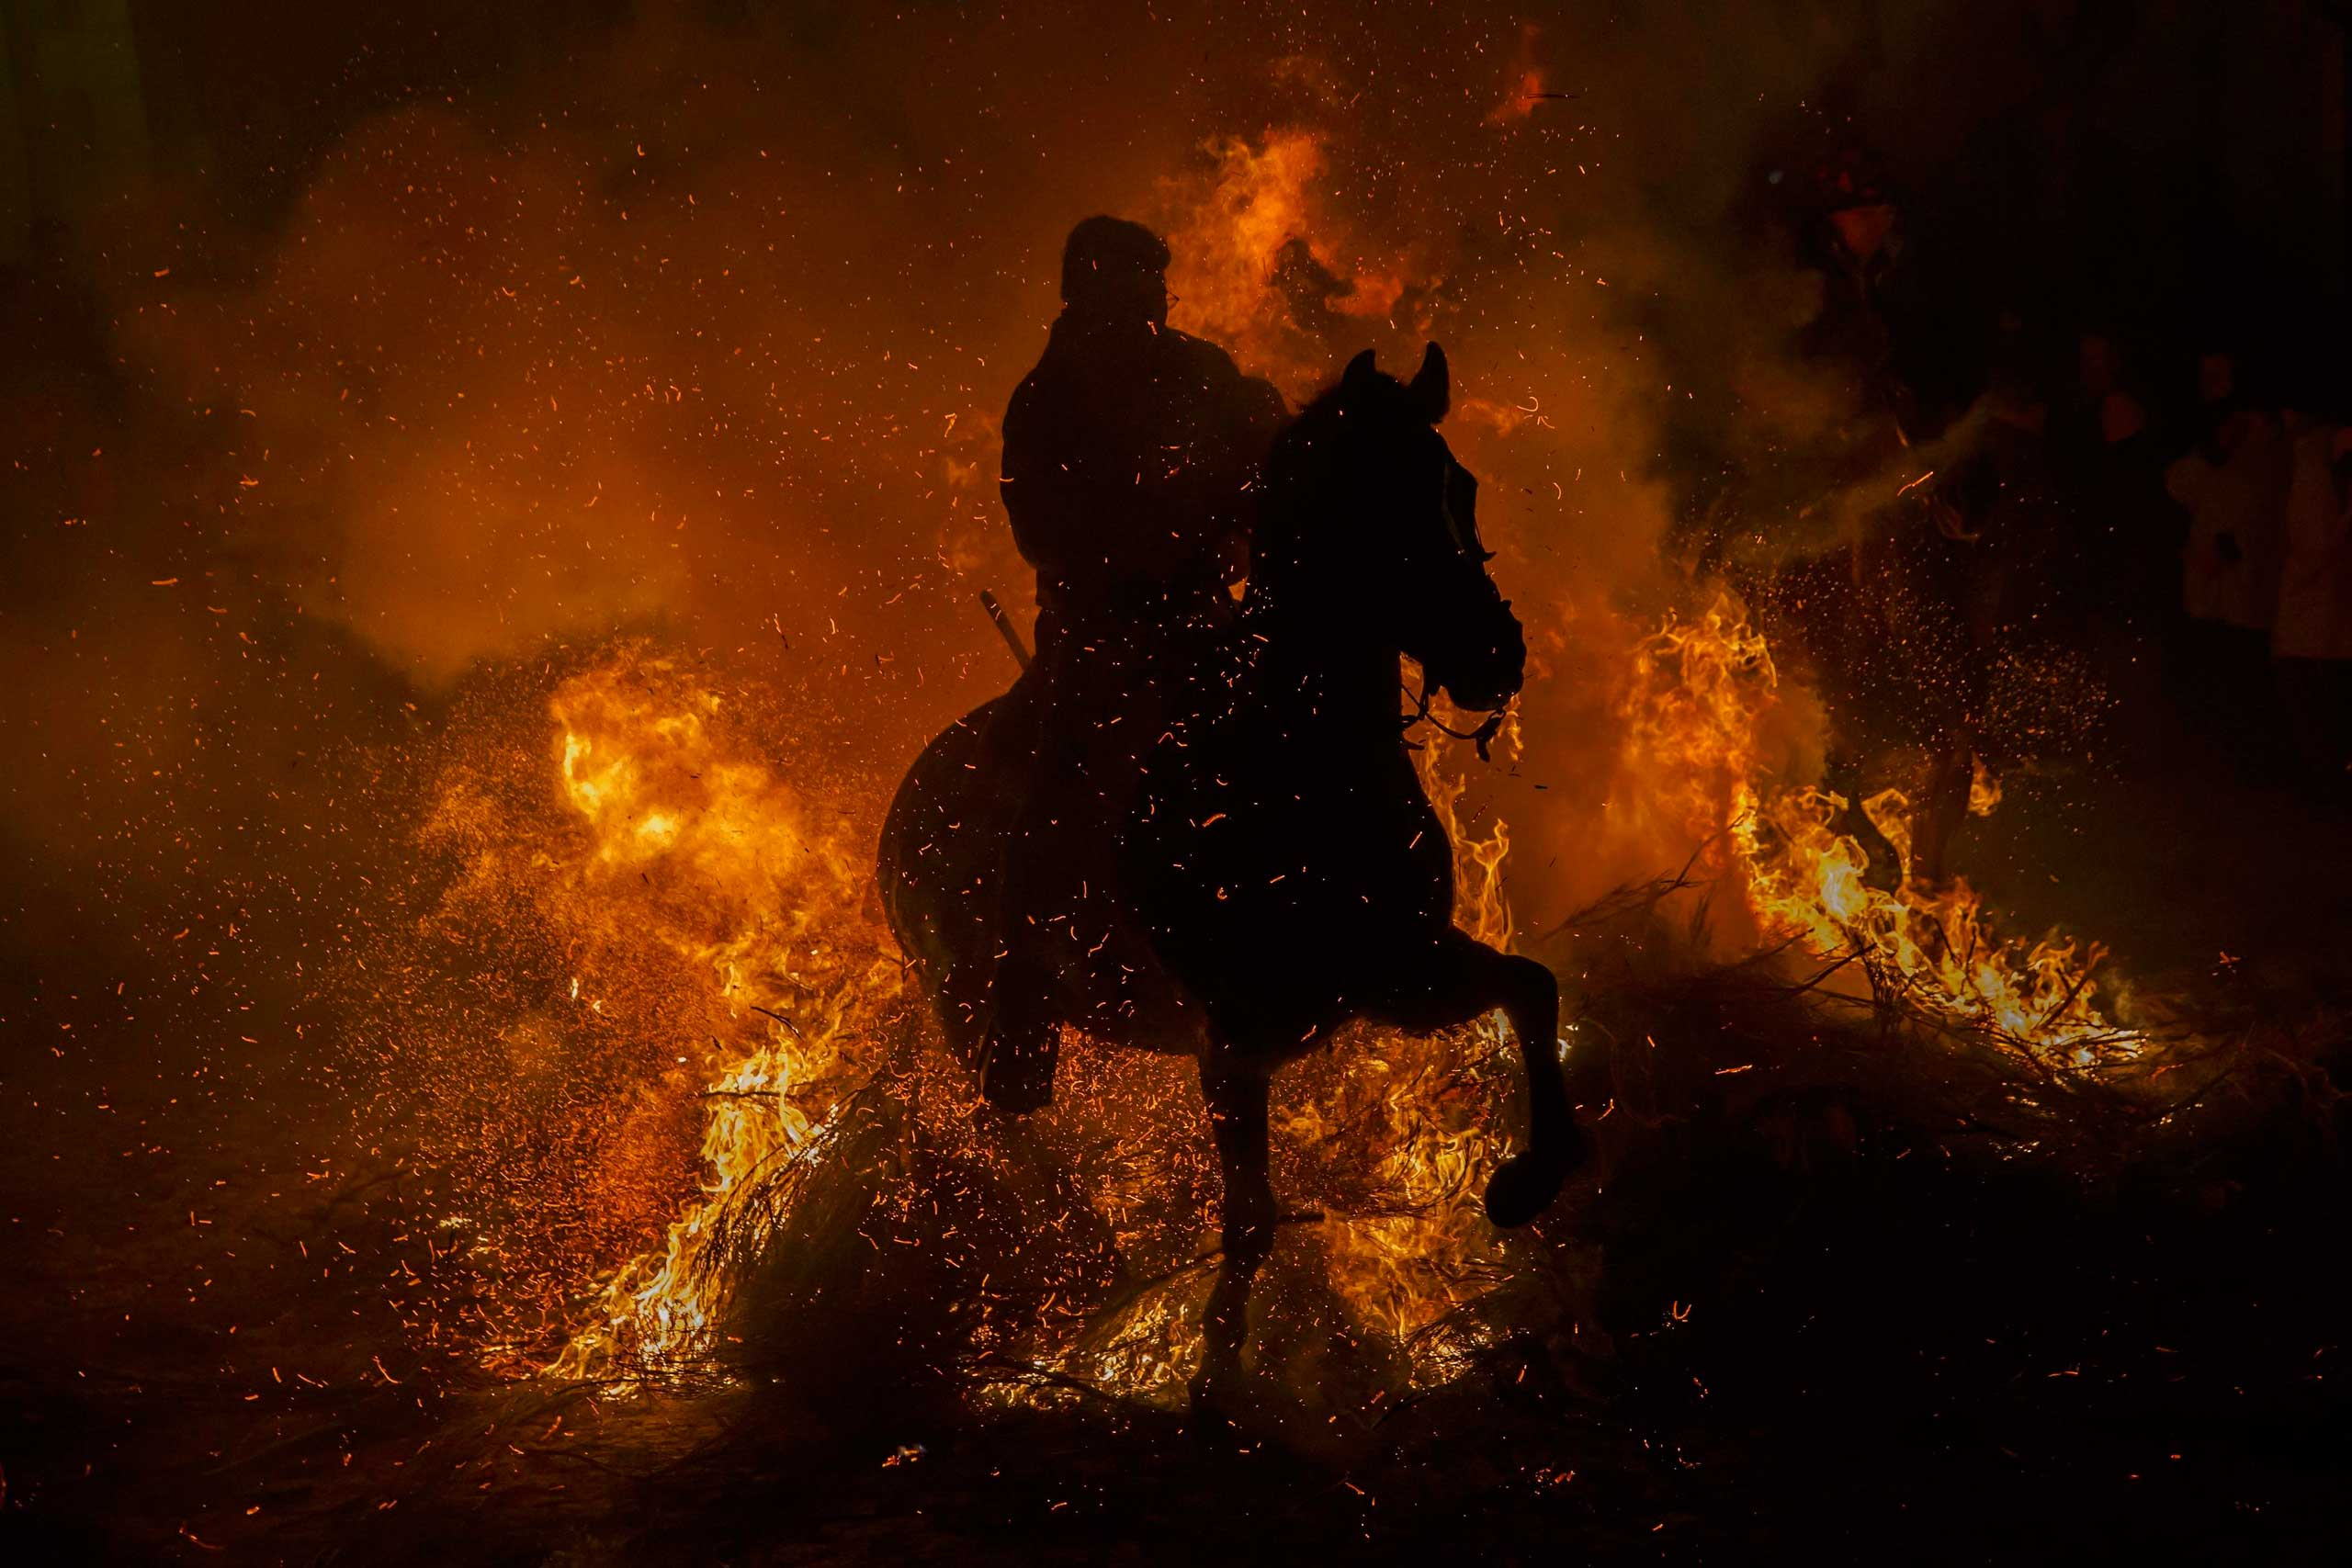 A man rides his horse through flames during the  Luminarias  annual religious celebration, on the night before Saint Anthony's, patron of animals, in the village of San Bartolome de los Pinares, Spain, Jan.16, 2015.